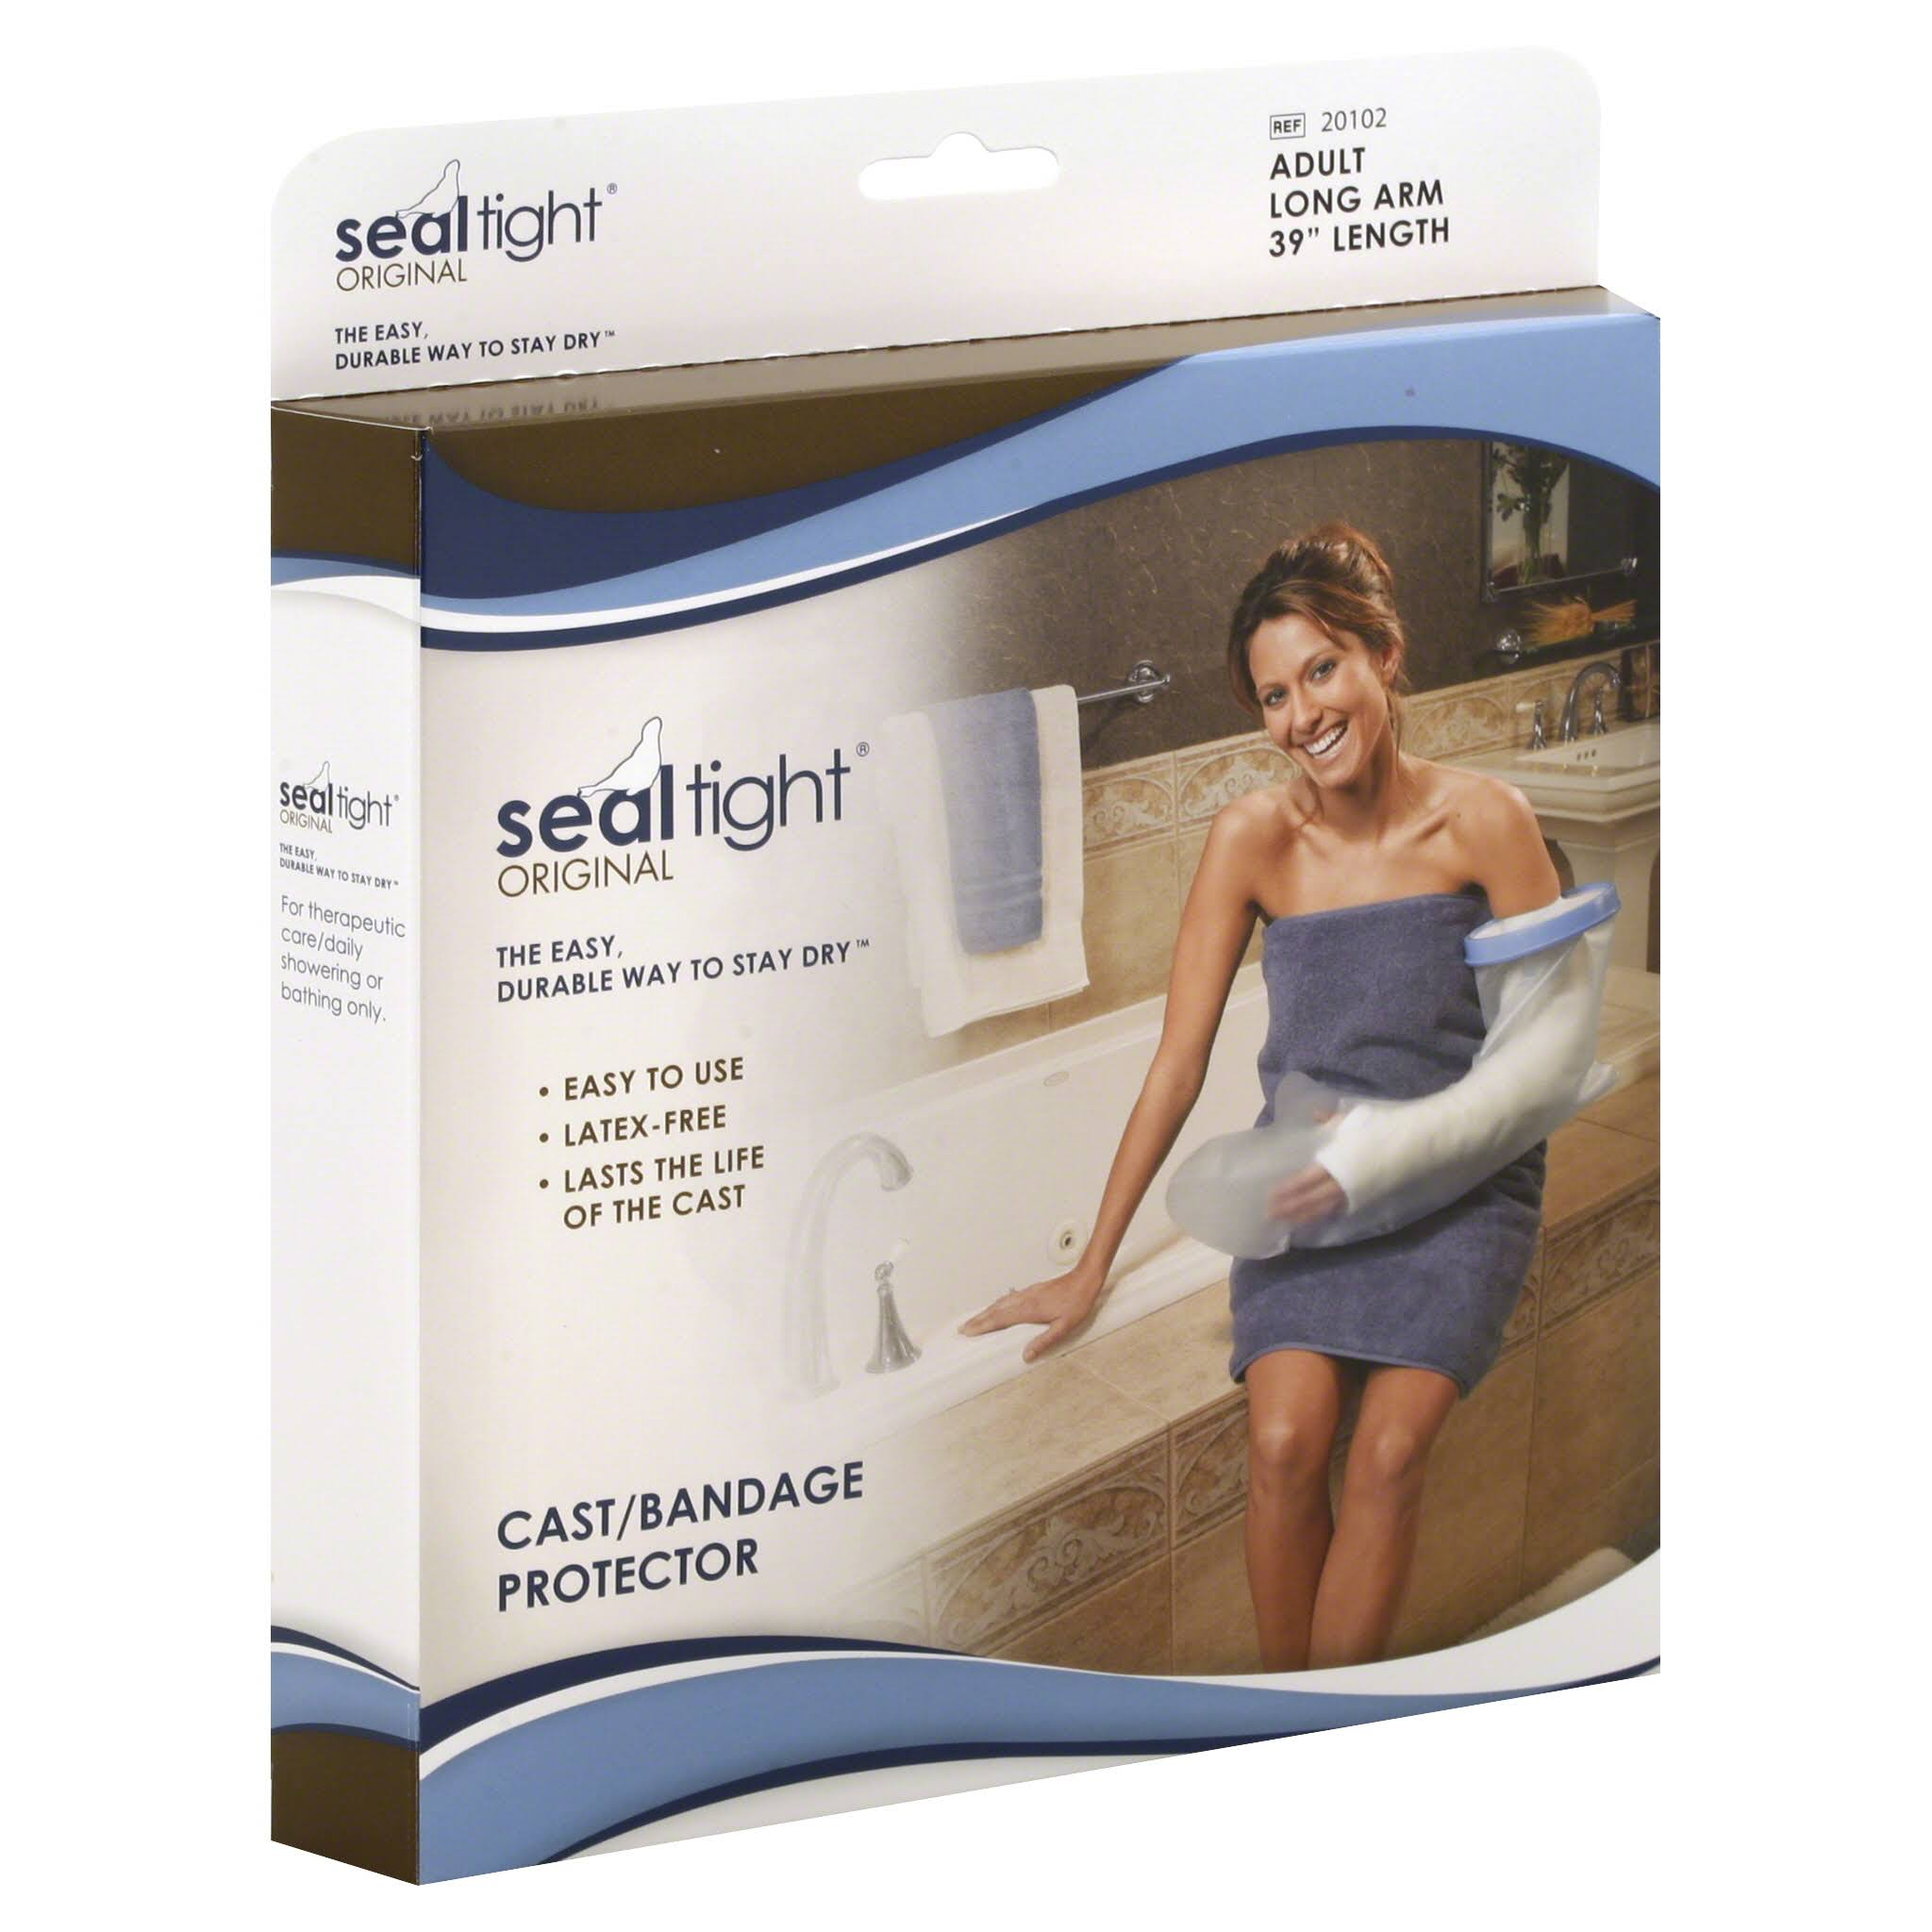 Seal Tight Original Arm Bandage Protector - Adult Long Cast